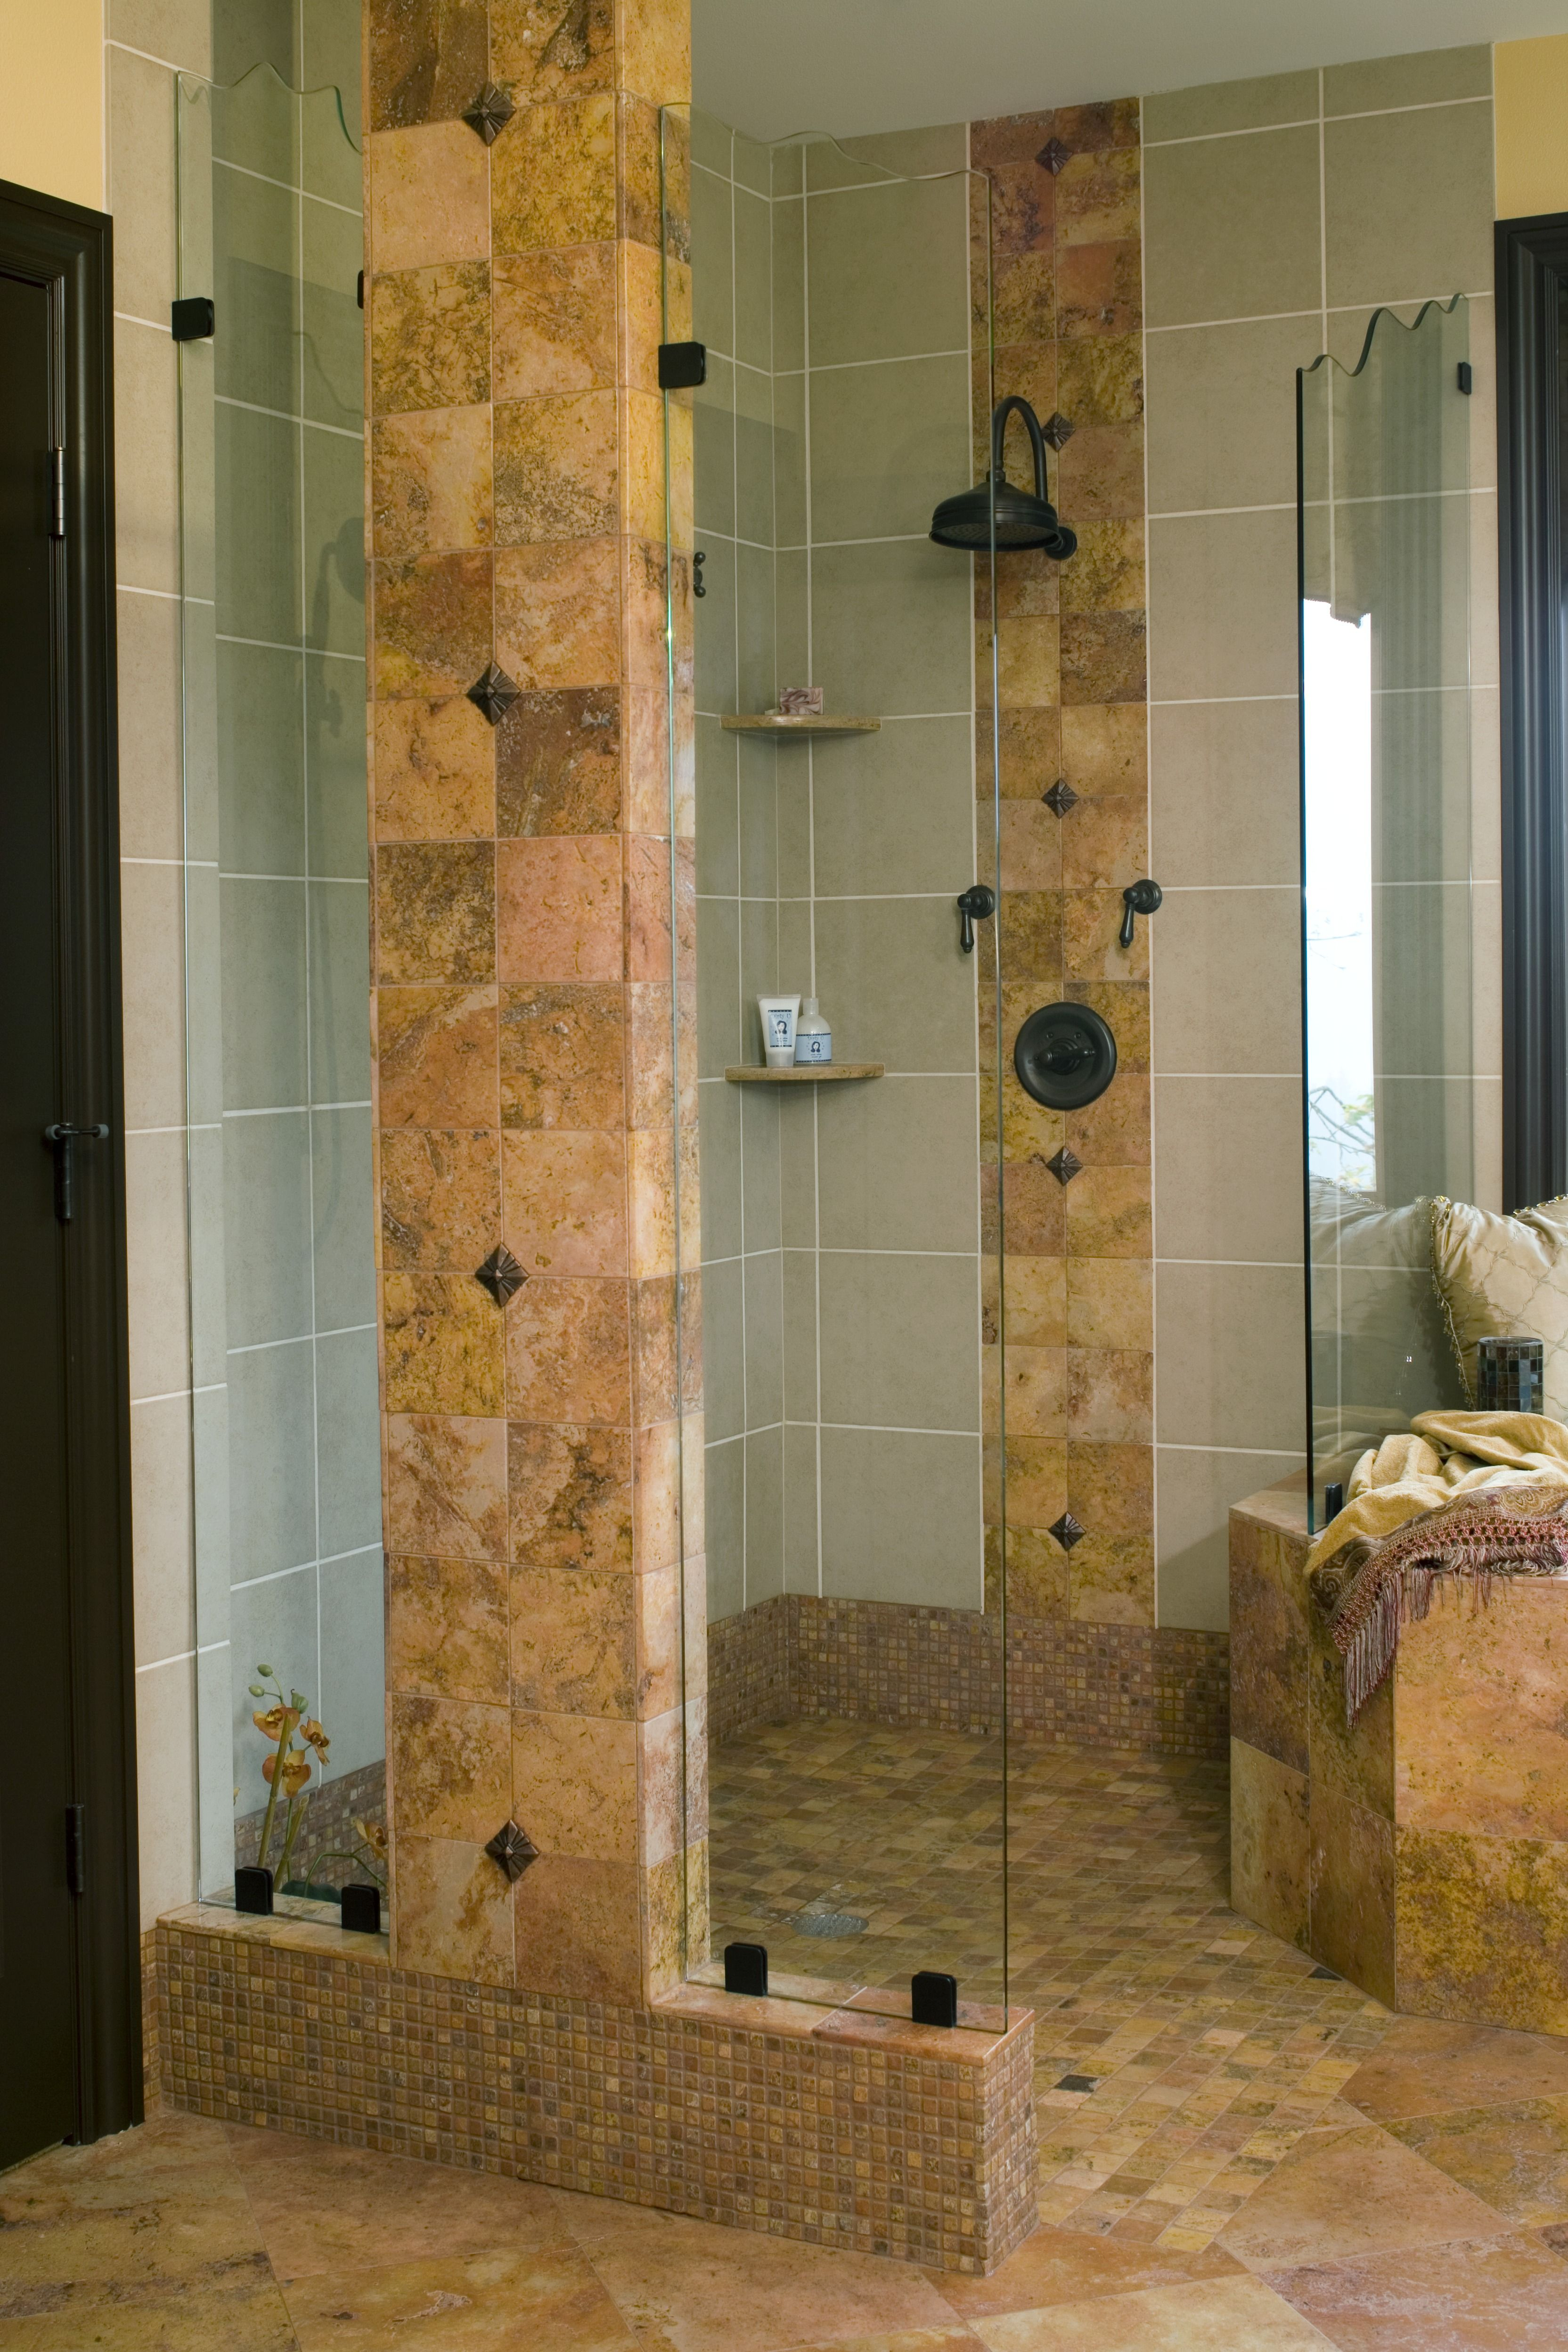 Intriguing shower design with glass shower walls, stone columns and ...